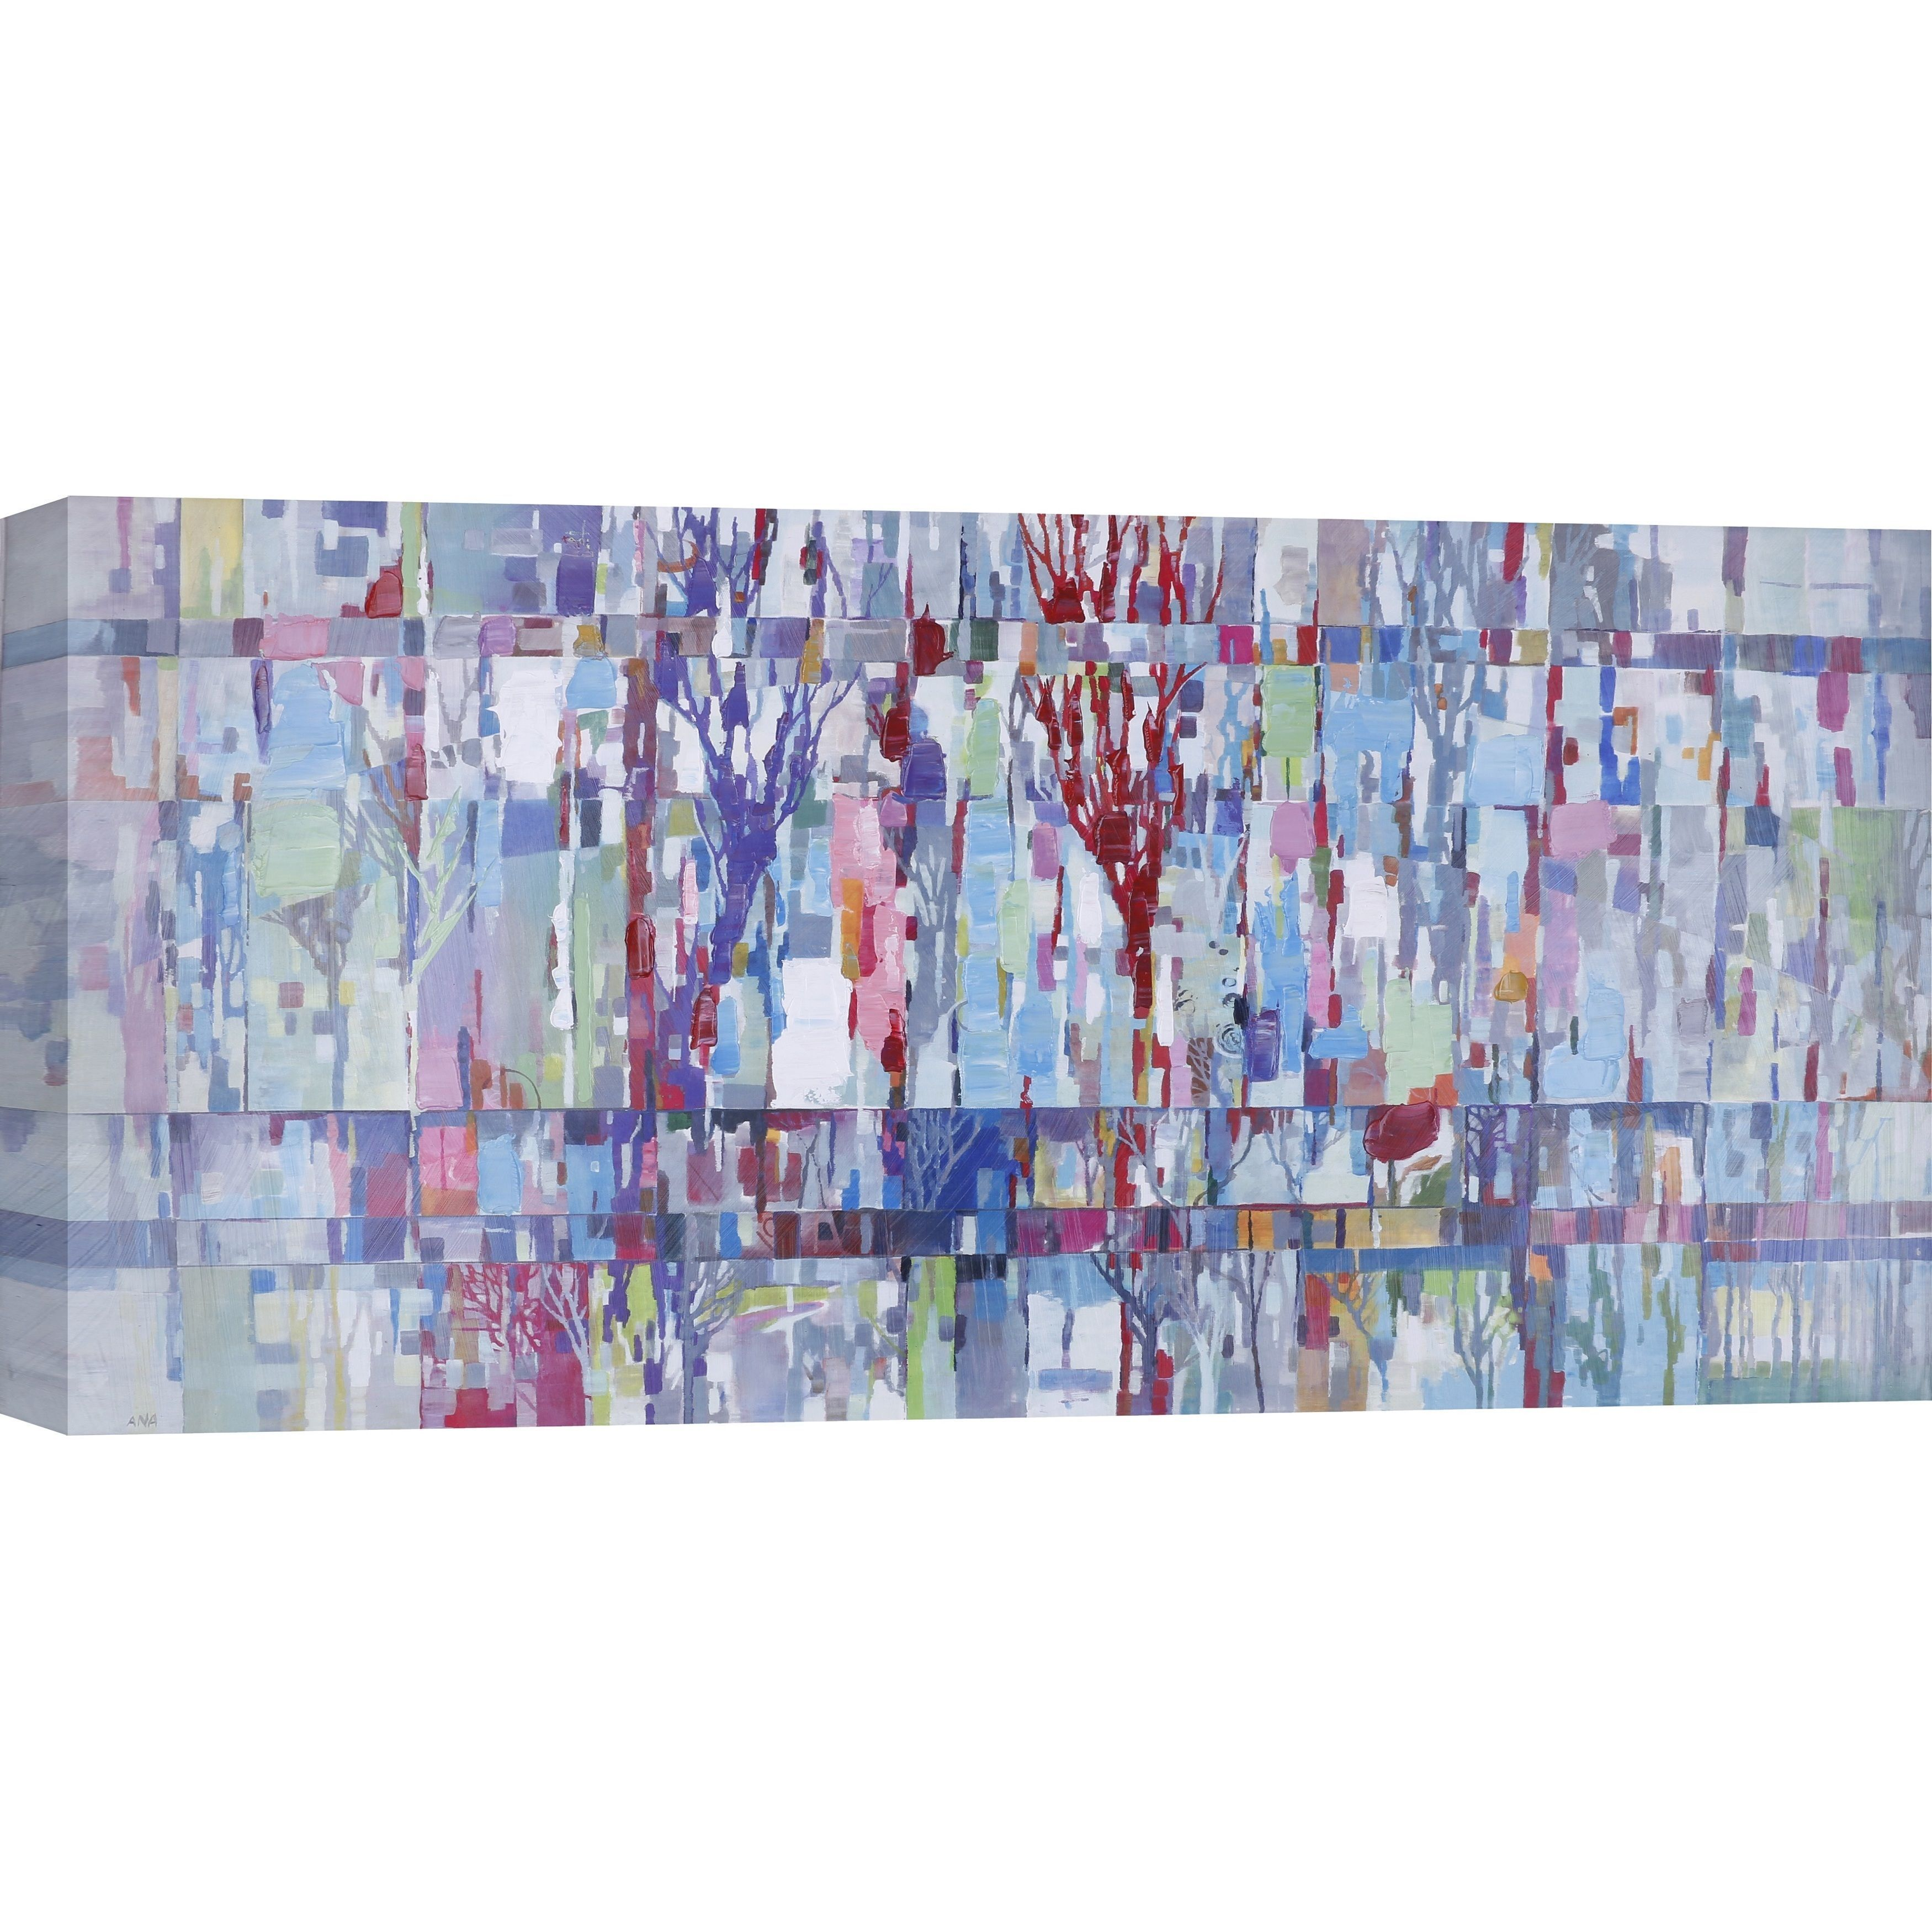 Anastasia C.'s 'Colorful Trees' 30X60 Canvas Wall Art